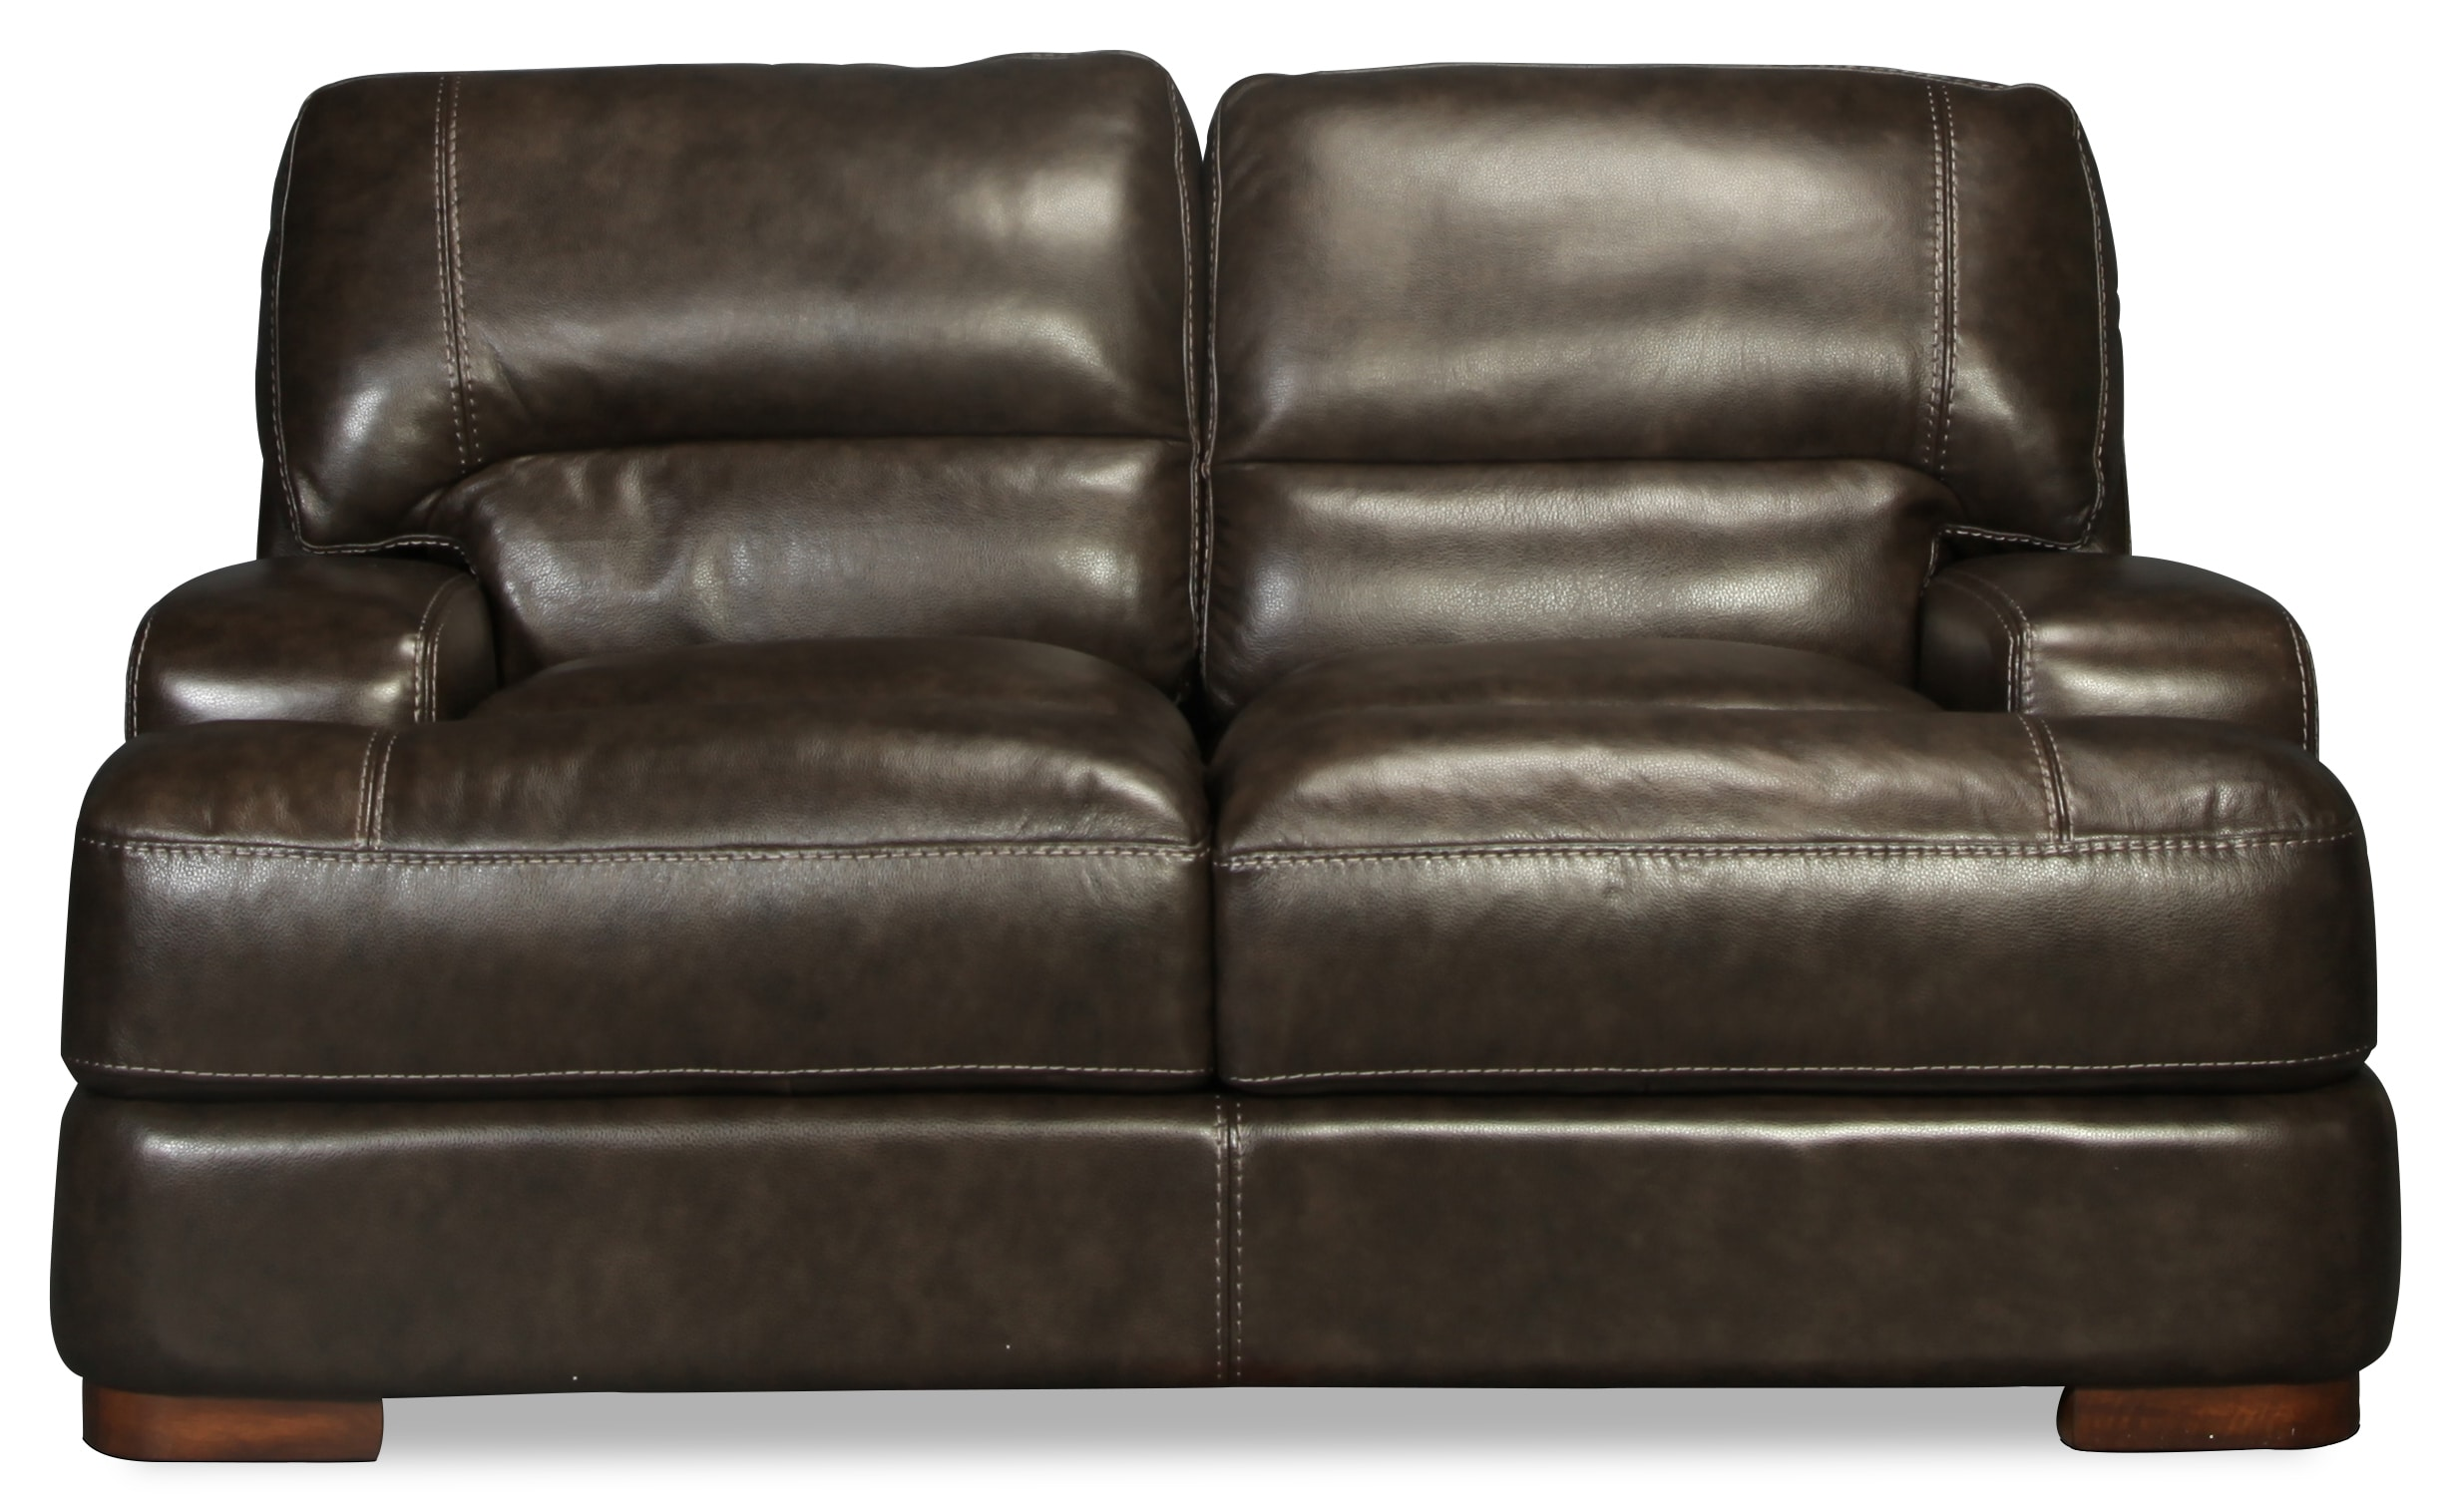 Living Room Furniture - Salina Leather Loveseat